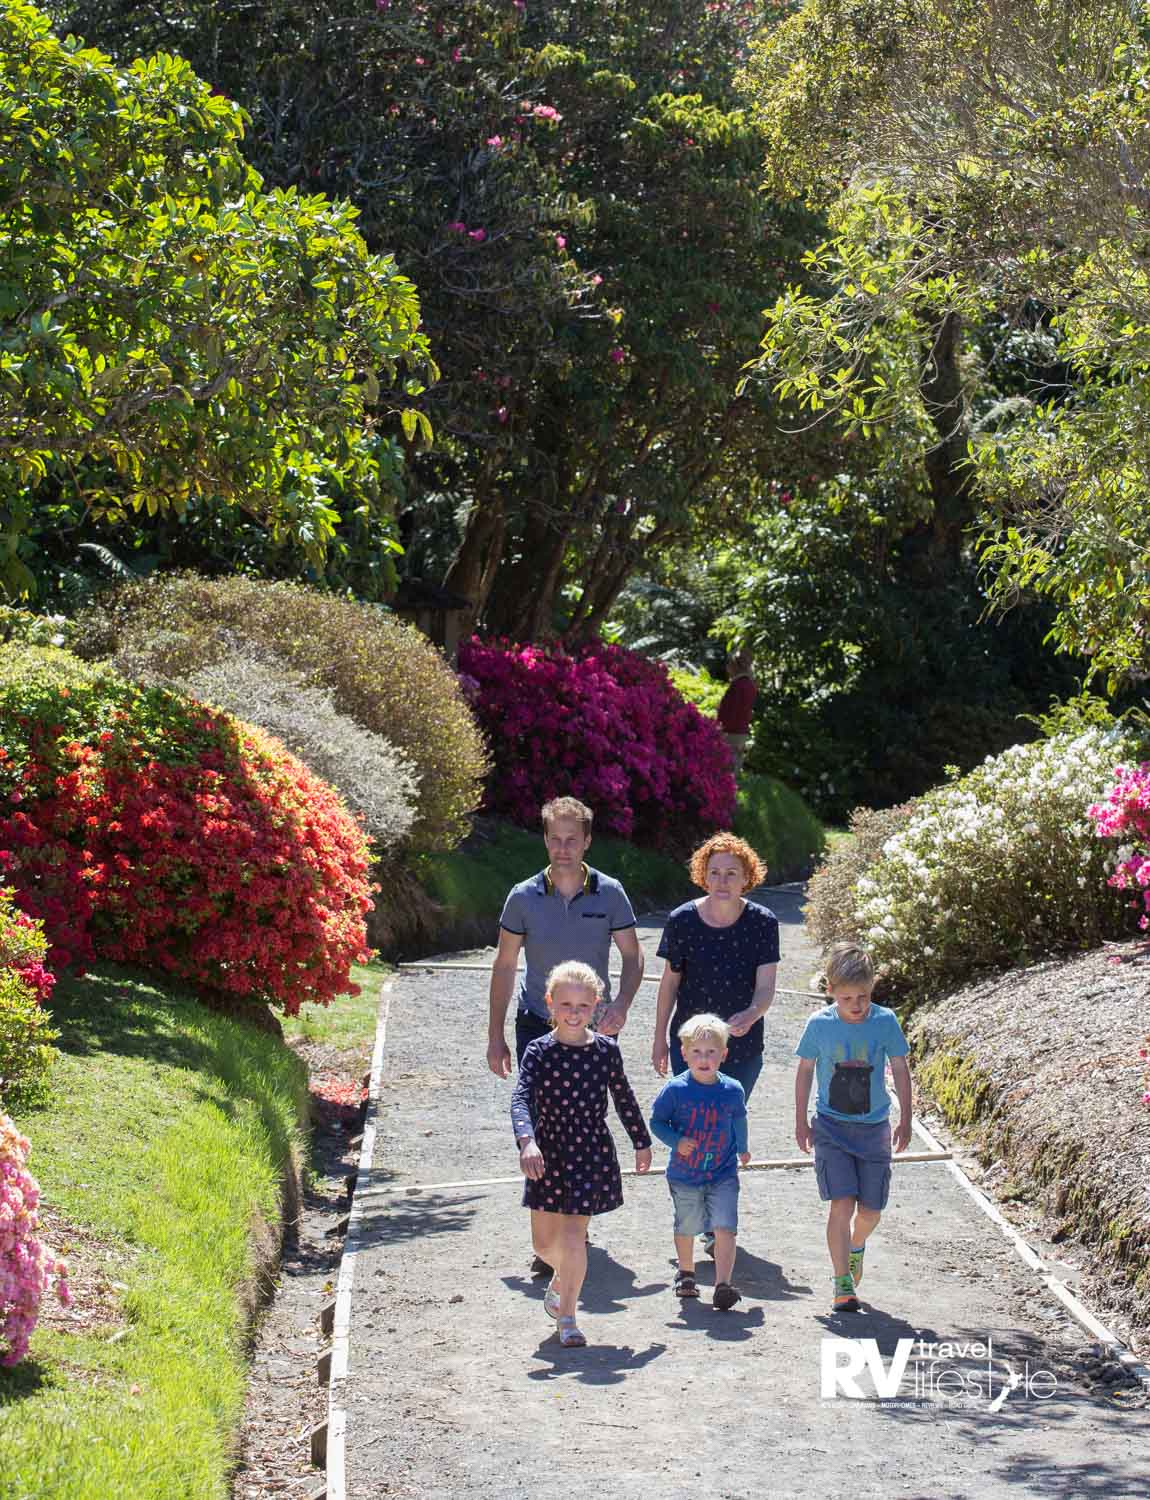 Pukeiti has a world-class rhododendron collection